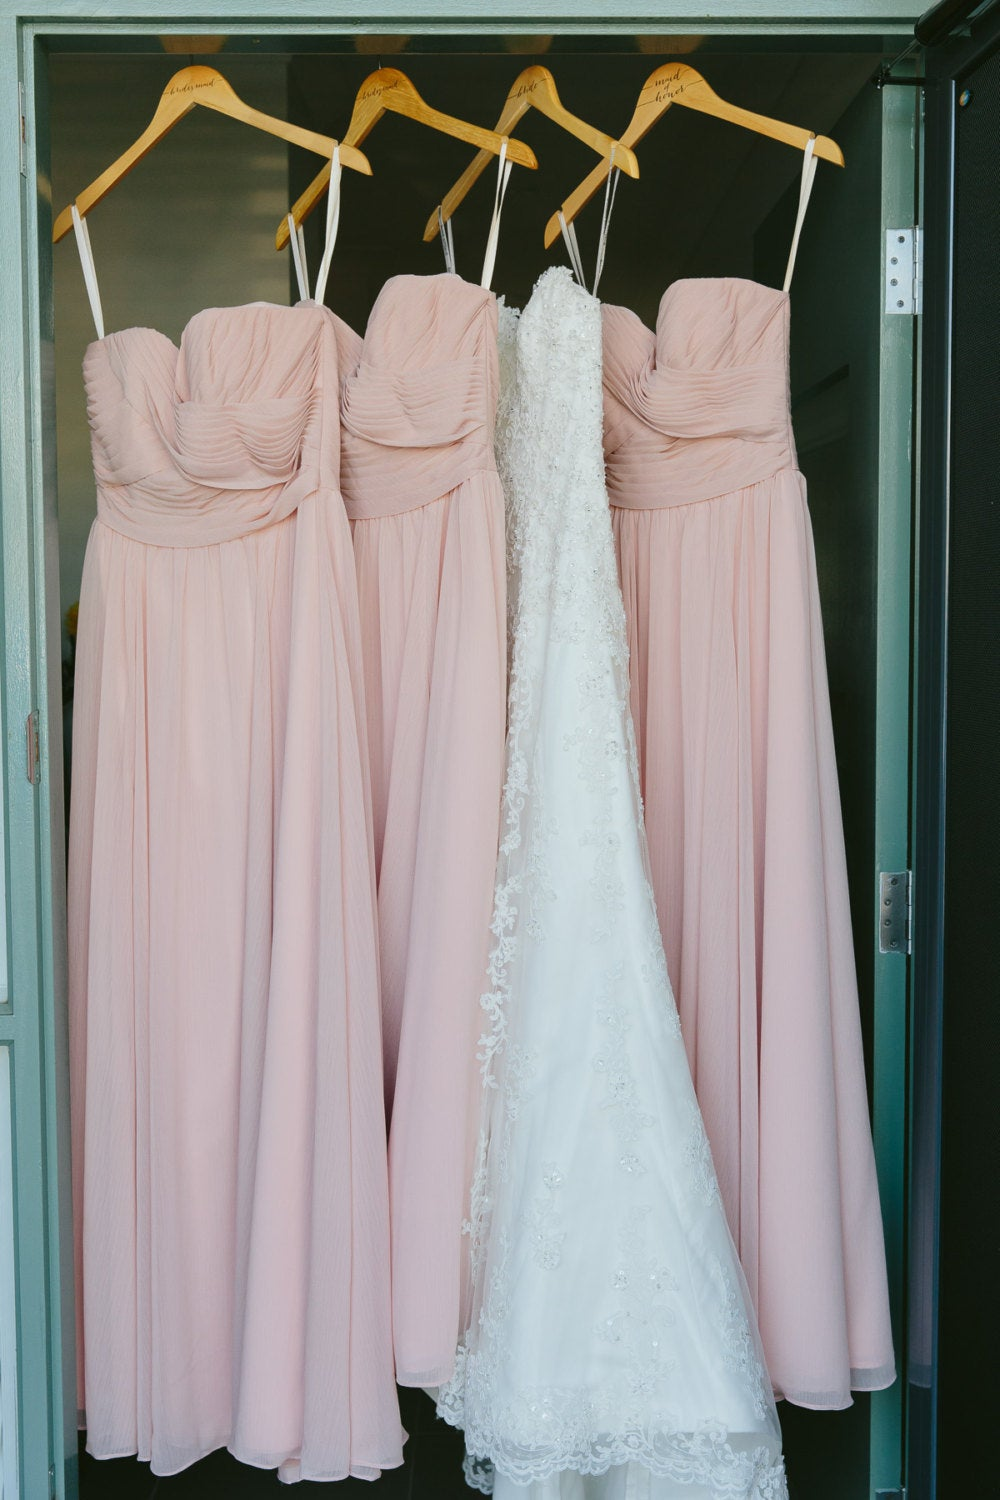 Bridal Party Gifts For Wedding Dress Hangers Bride & Bridesmaids Hanger Mrs